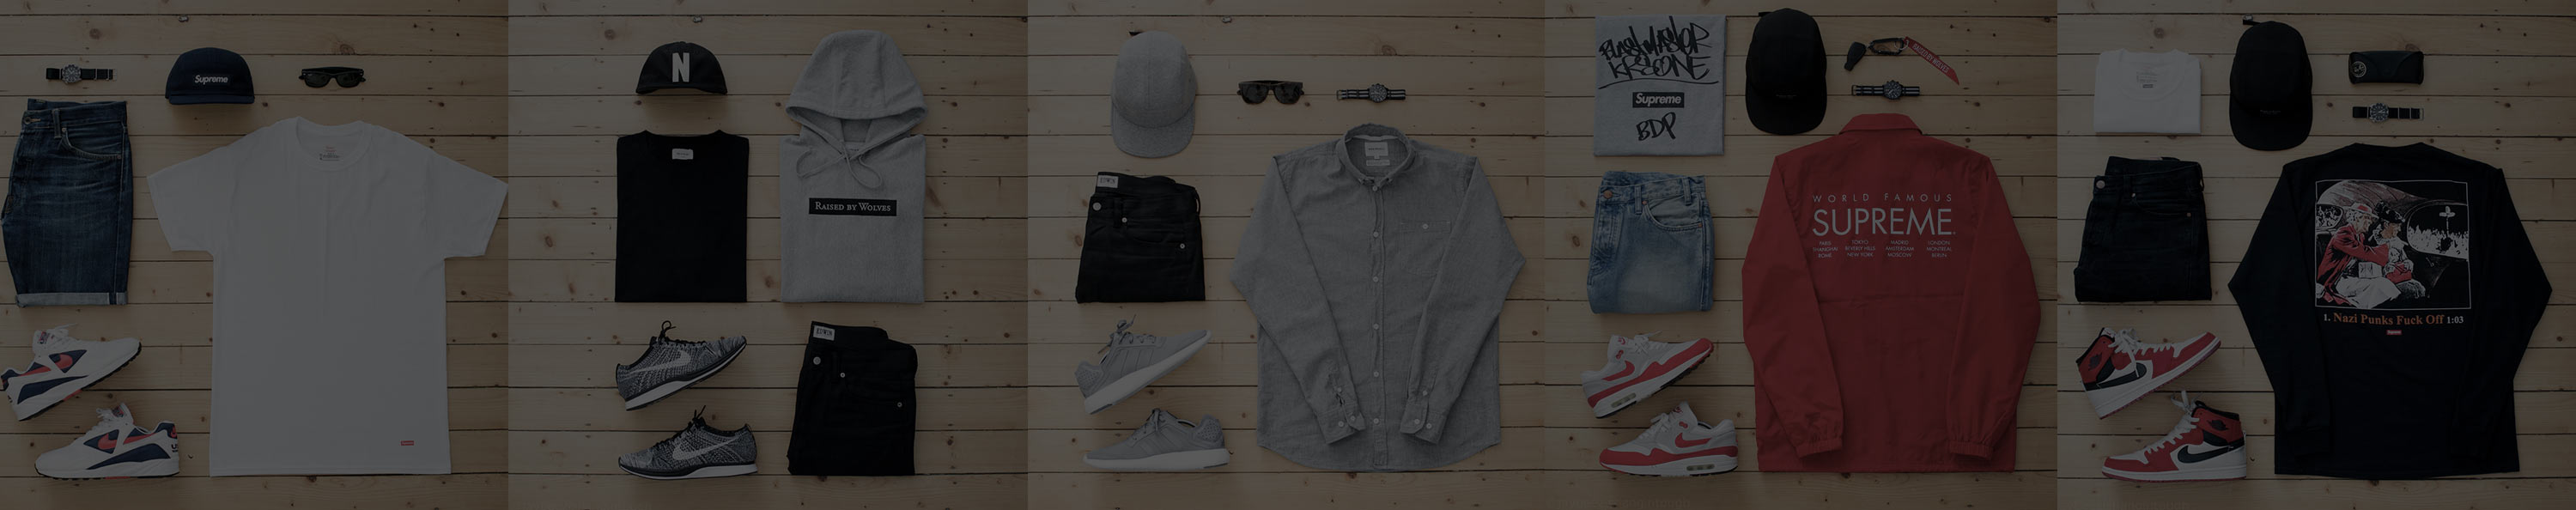 Header image with outfit grids